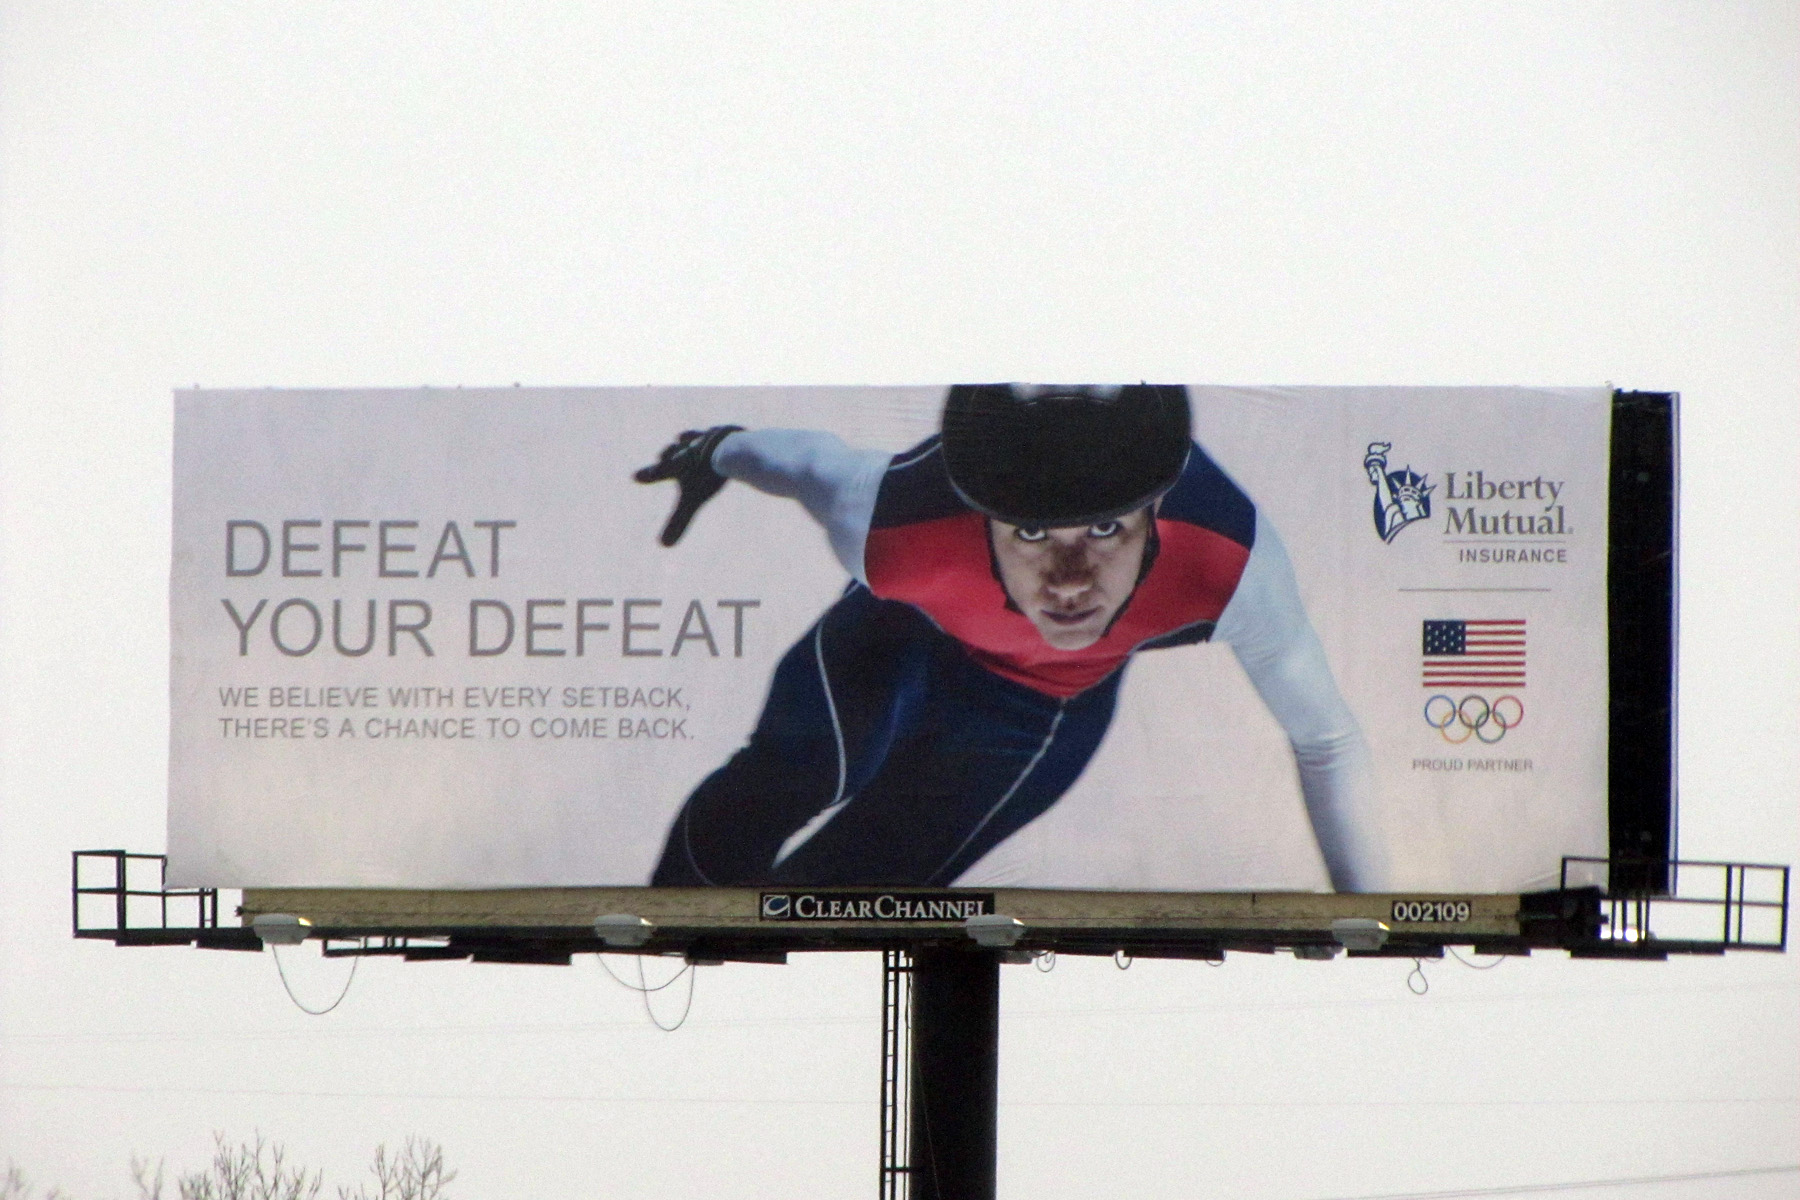 Defeat your defeat